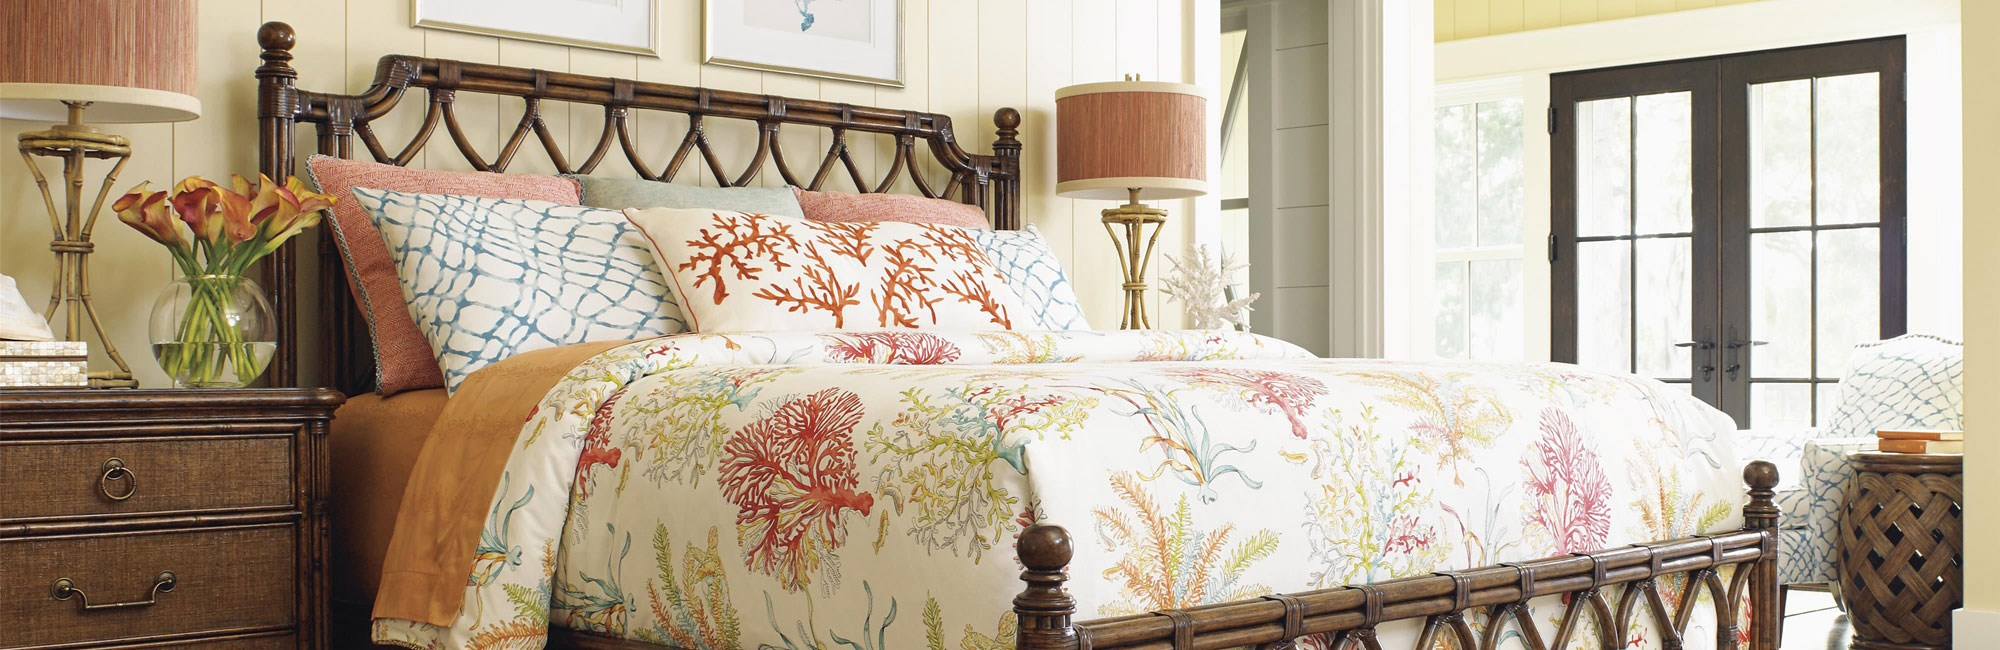 Huntington Bedroom Furniture Bedroom Furniture C S Wo Sons California Southern